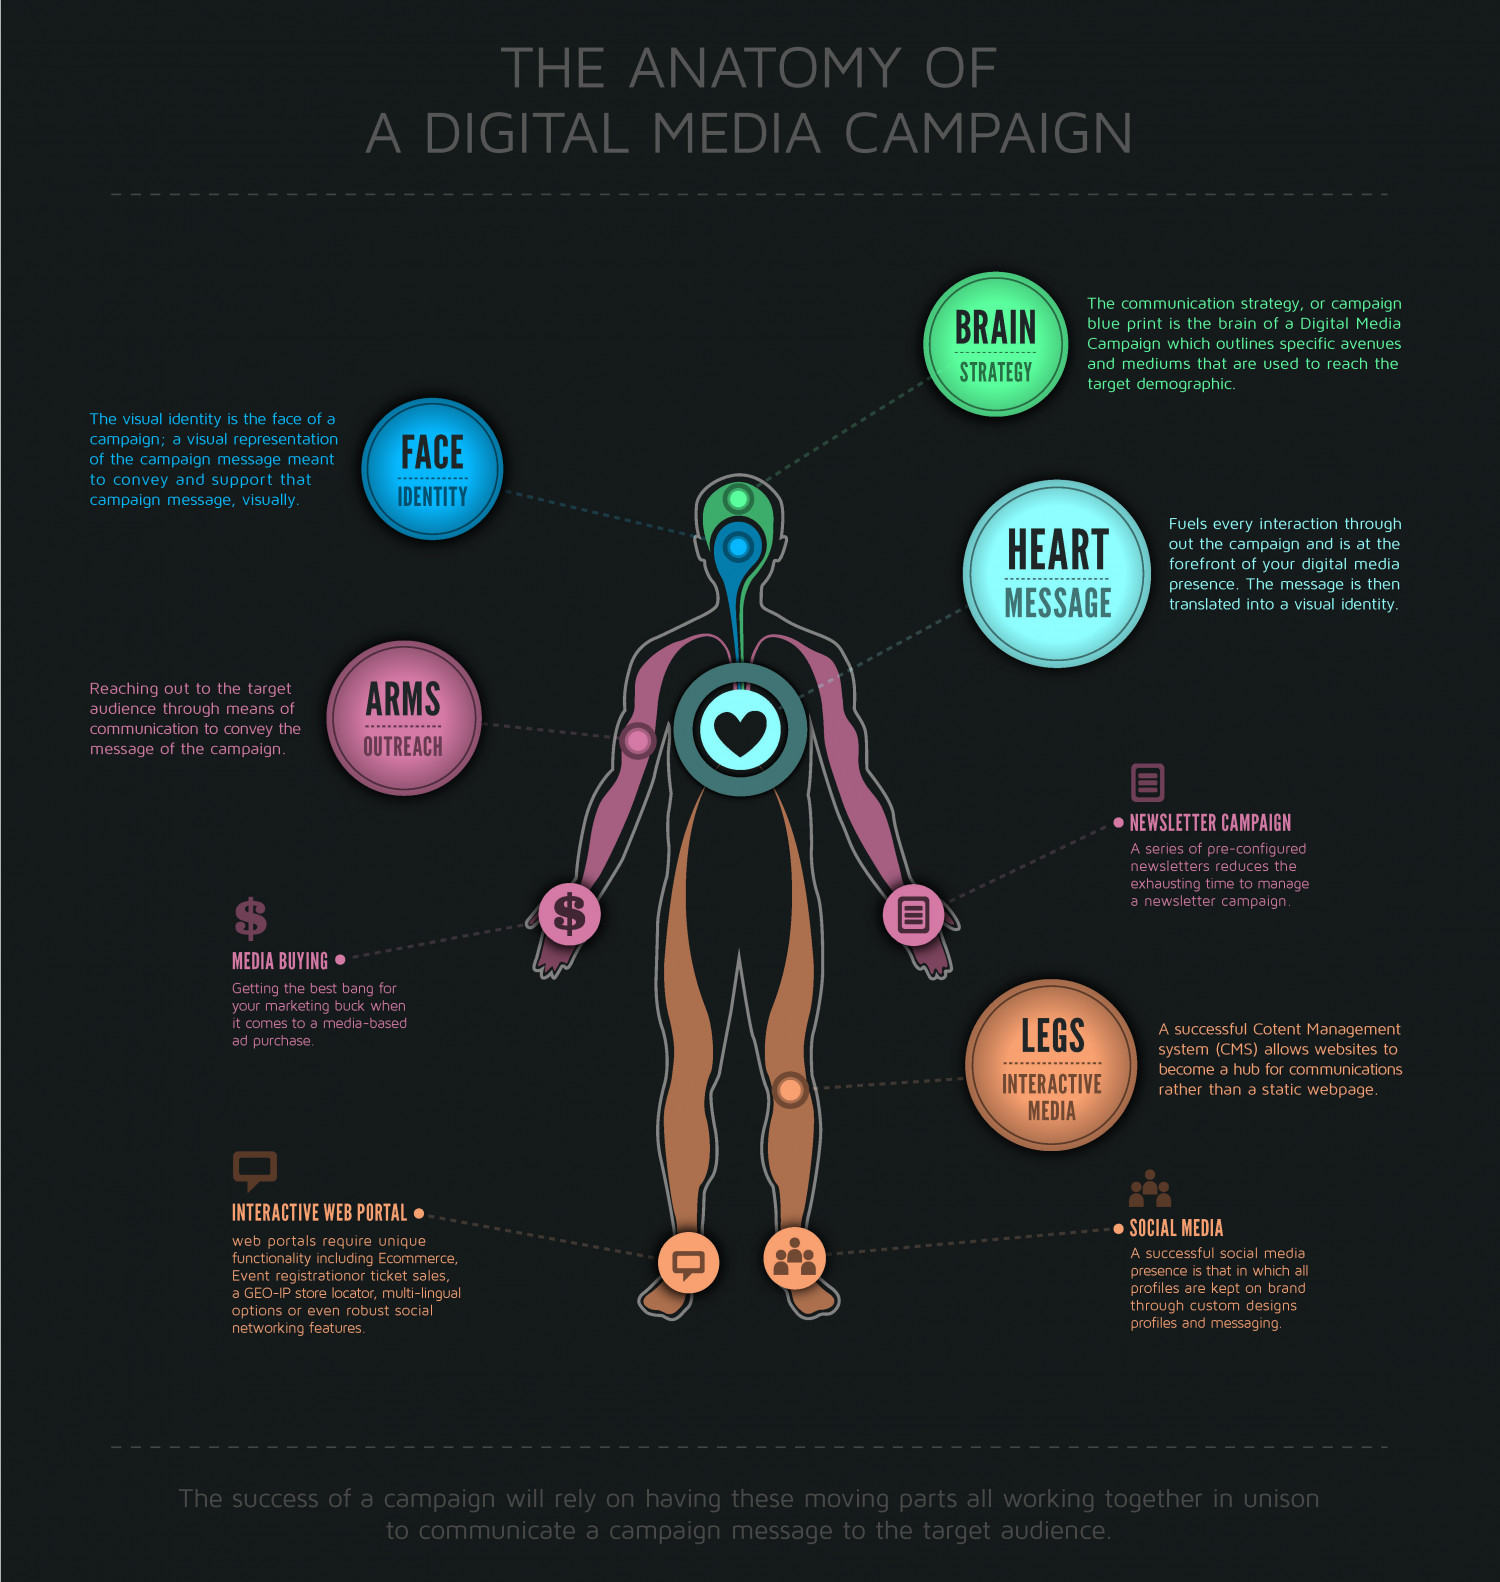 Anatomy of a Digital Media Campaign Infographic